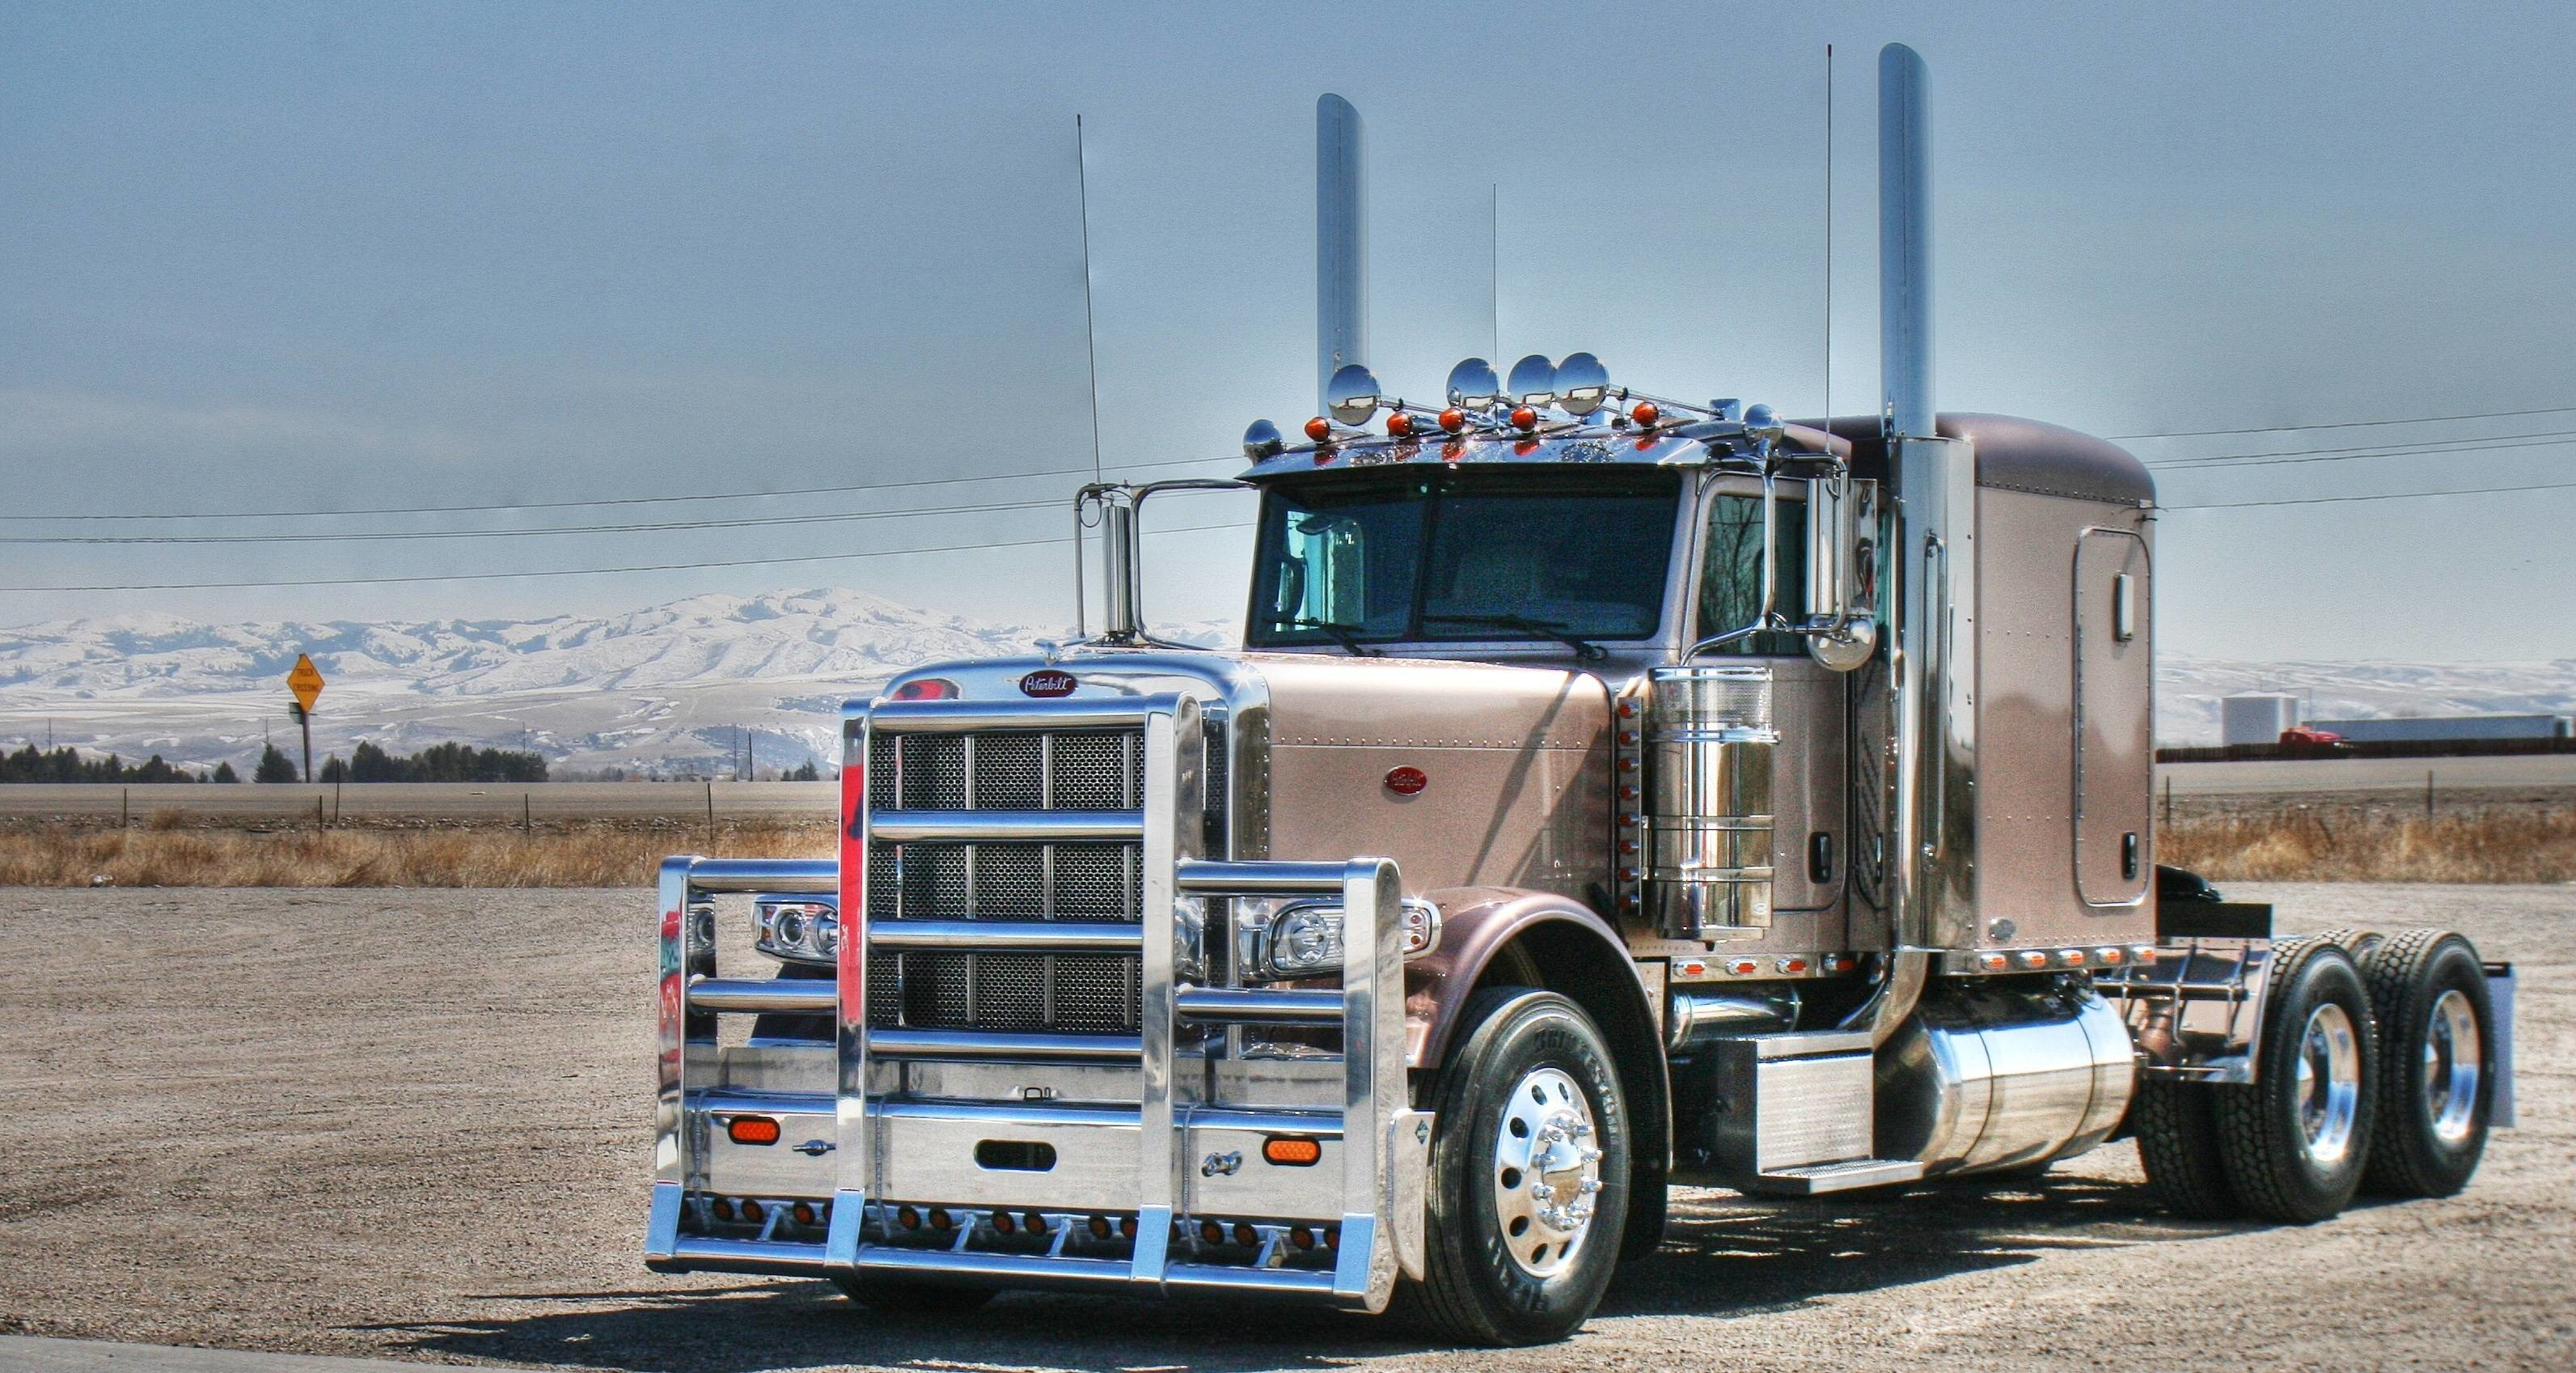 3185x1697 Peterbilt wallpaper | 2048x1339 | 166238 | WallpaperUP